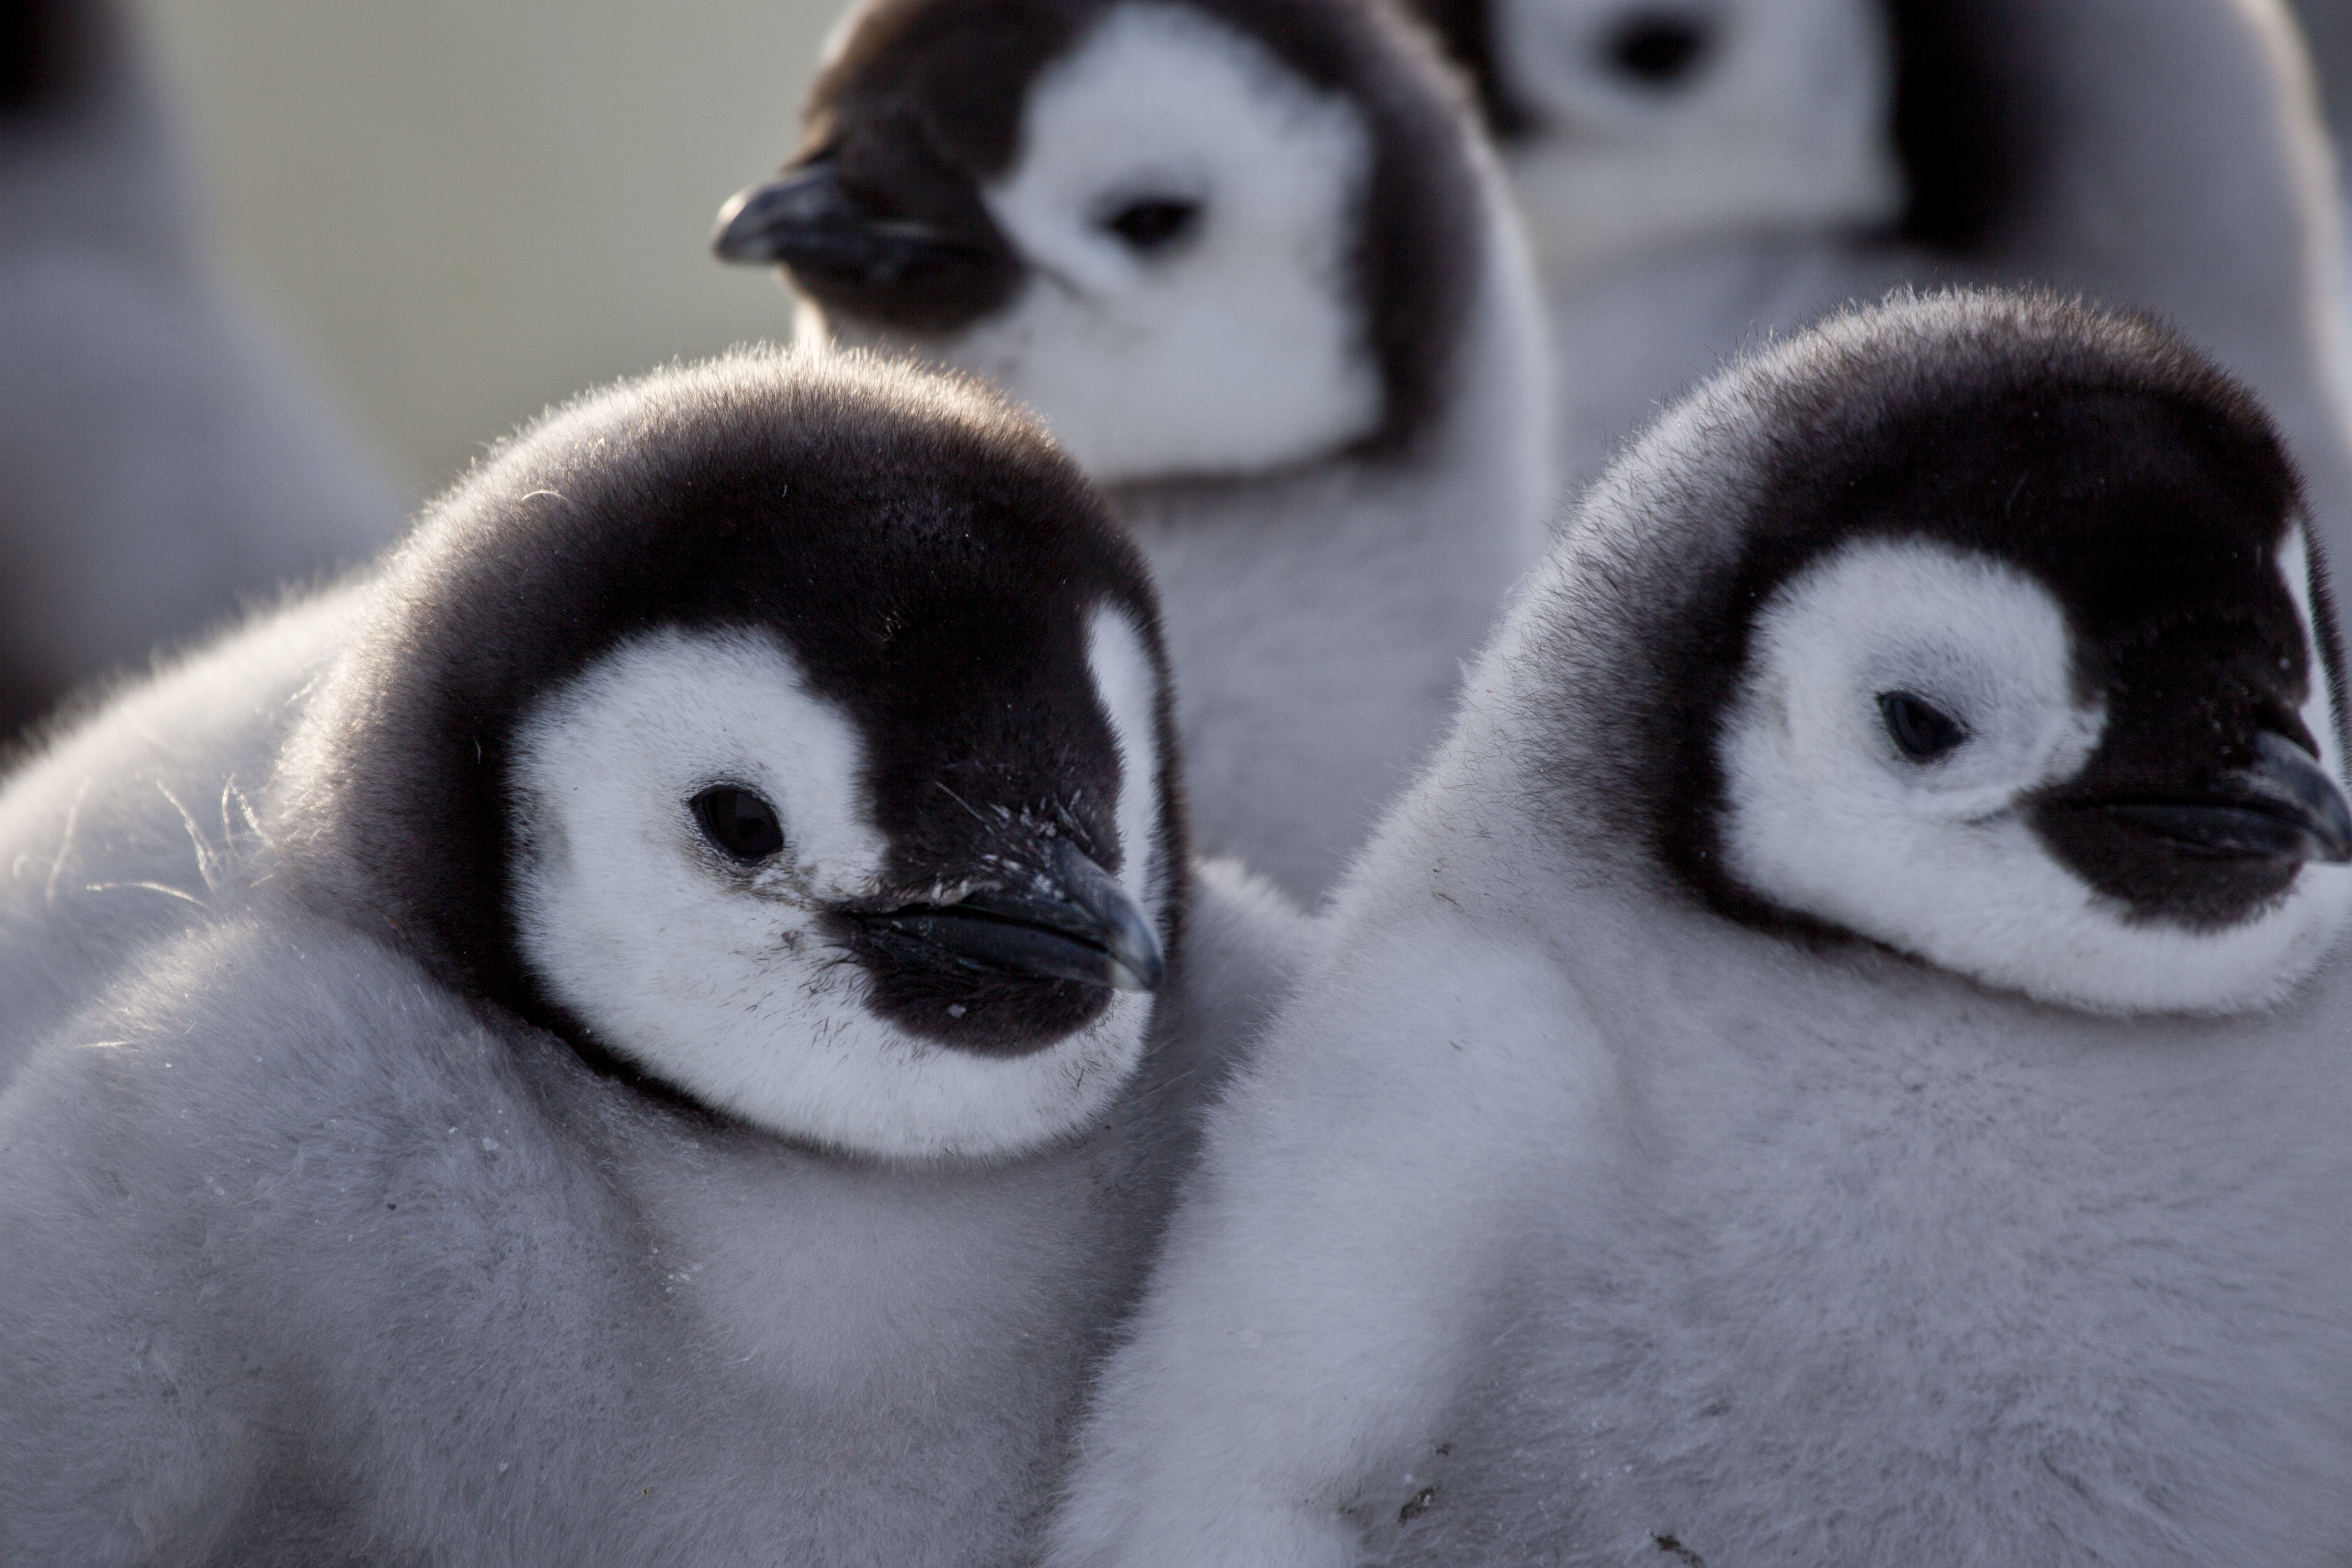 Nature (Season 33) - Penguins: Spy in the Huddle, A Nature ...